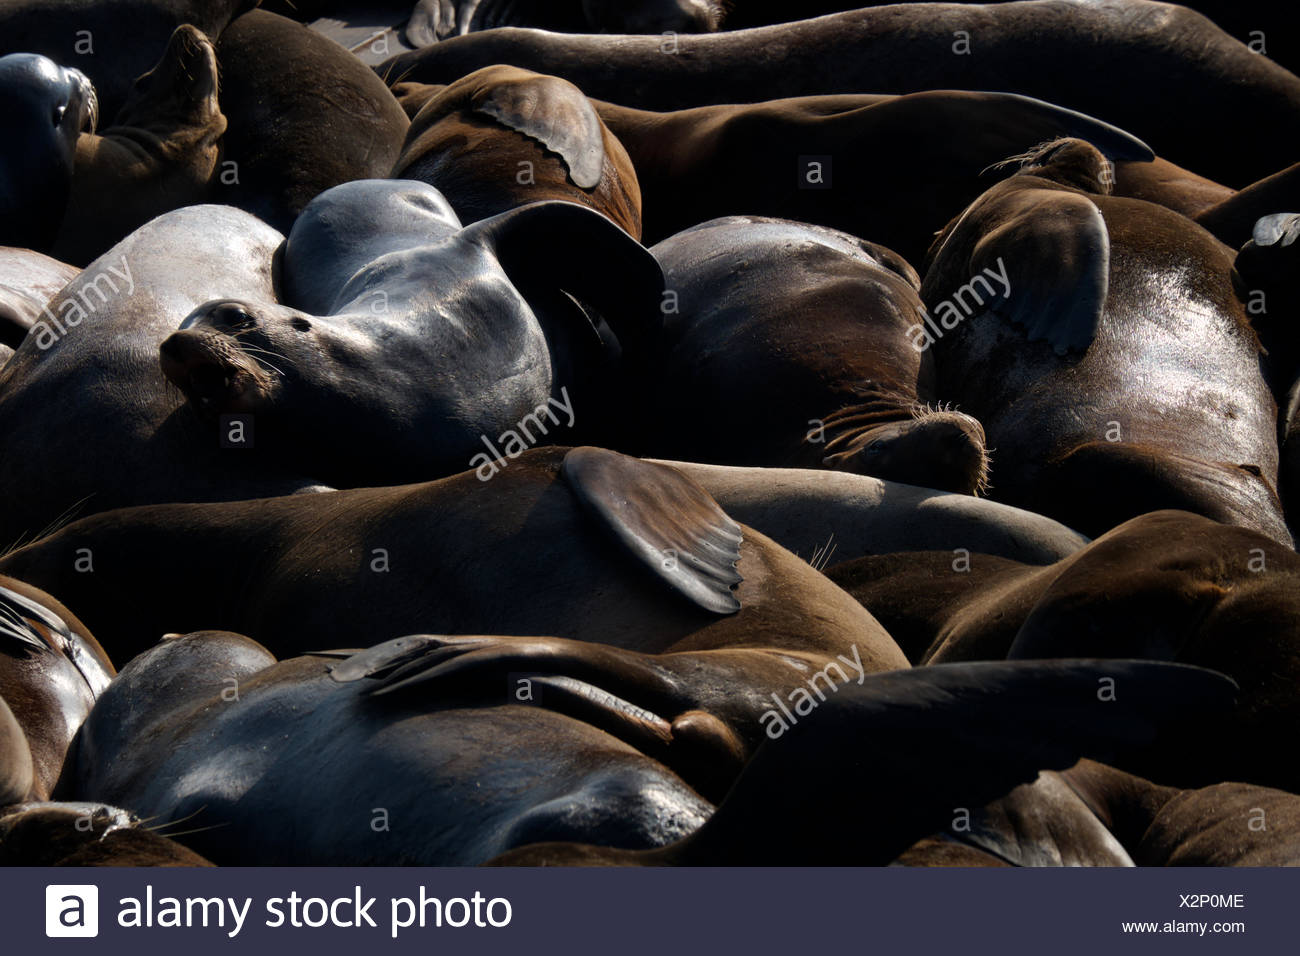 Sea Lions huddle close to each other at Pier 29 at Fisherman's Wharf in San Francisco, California. - Stock Image